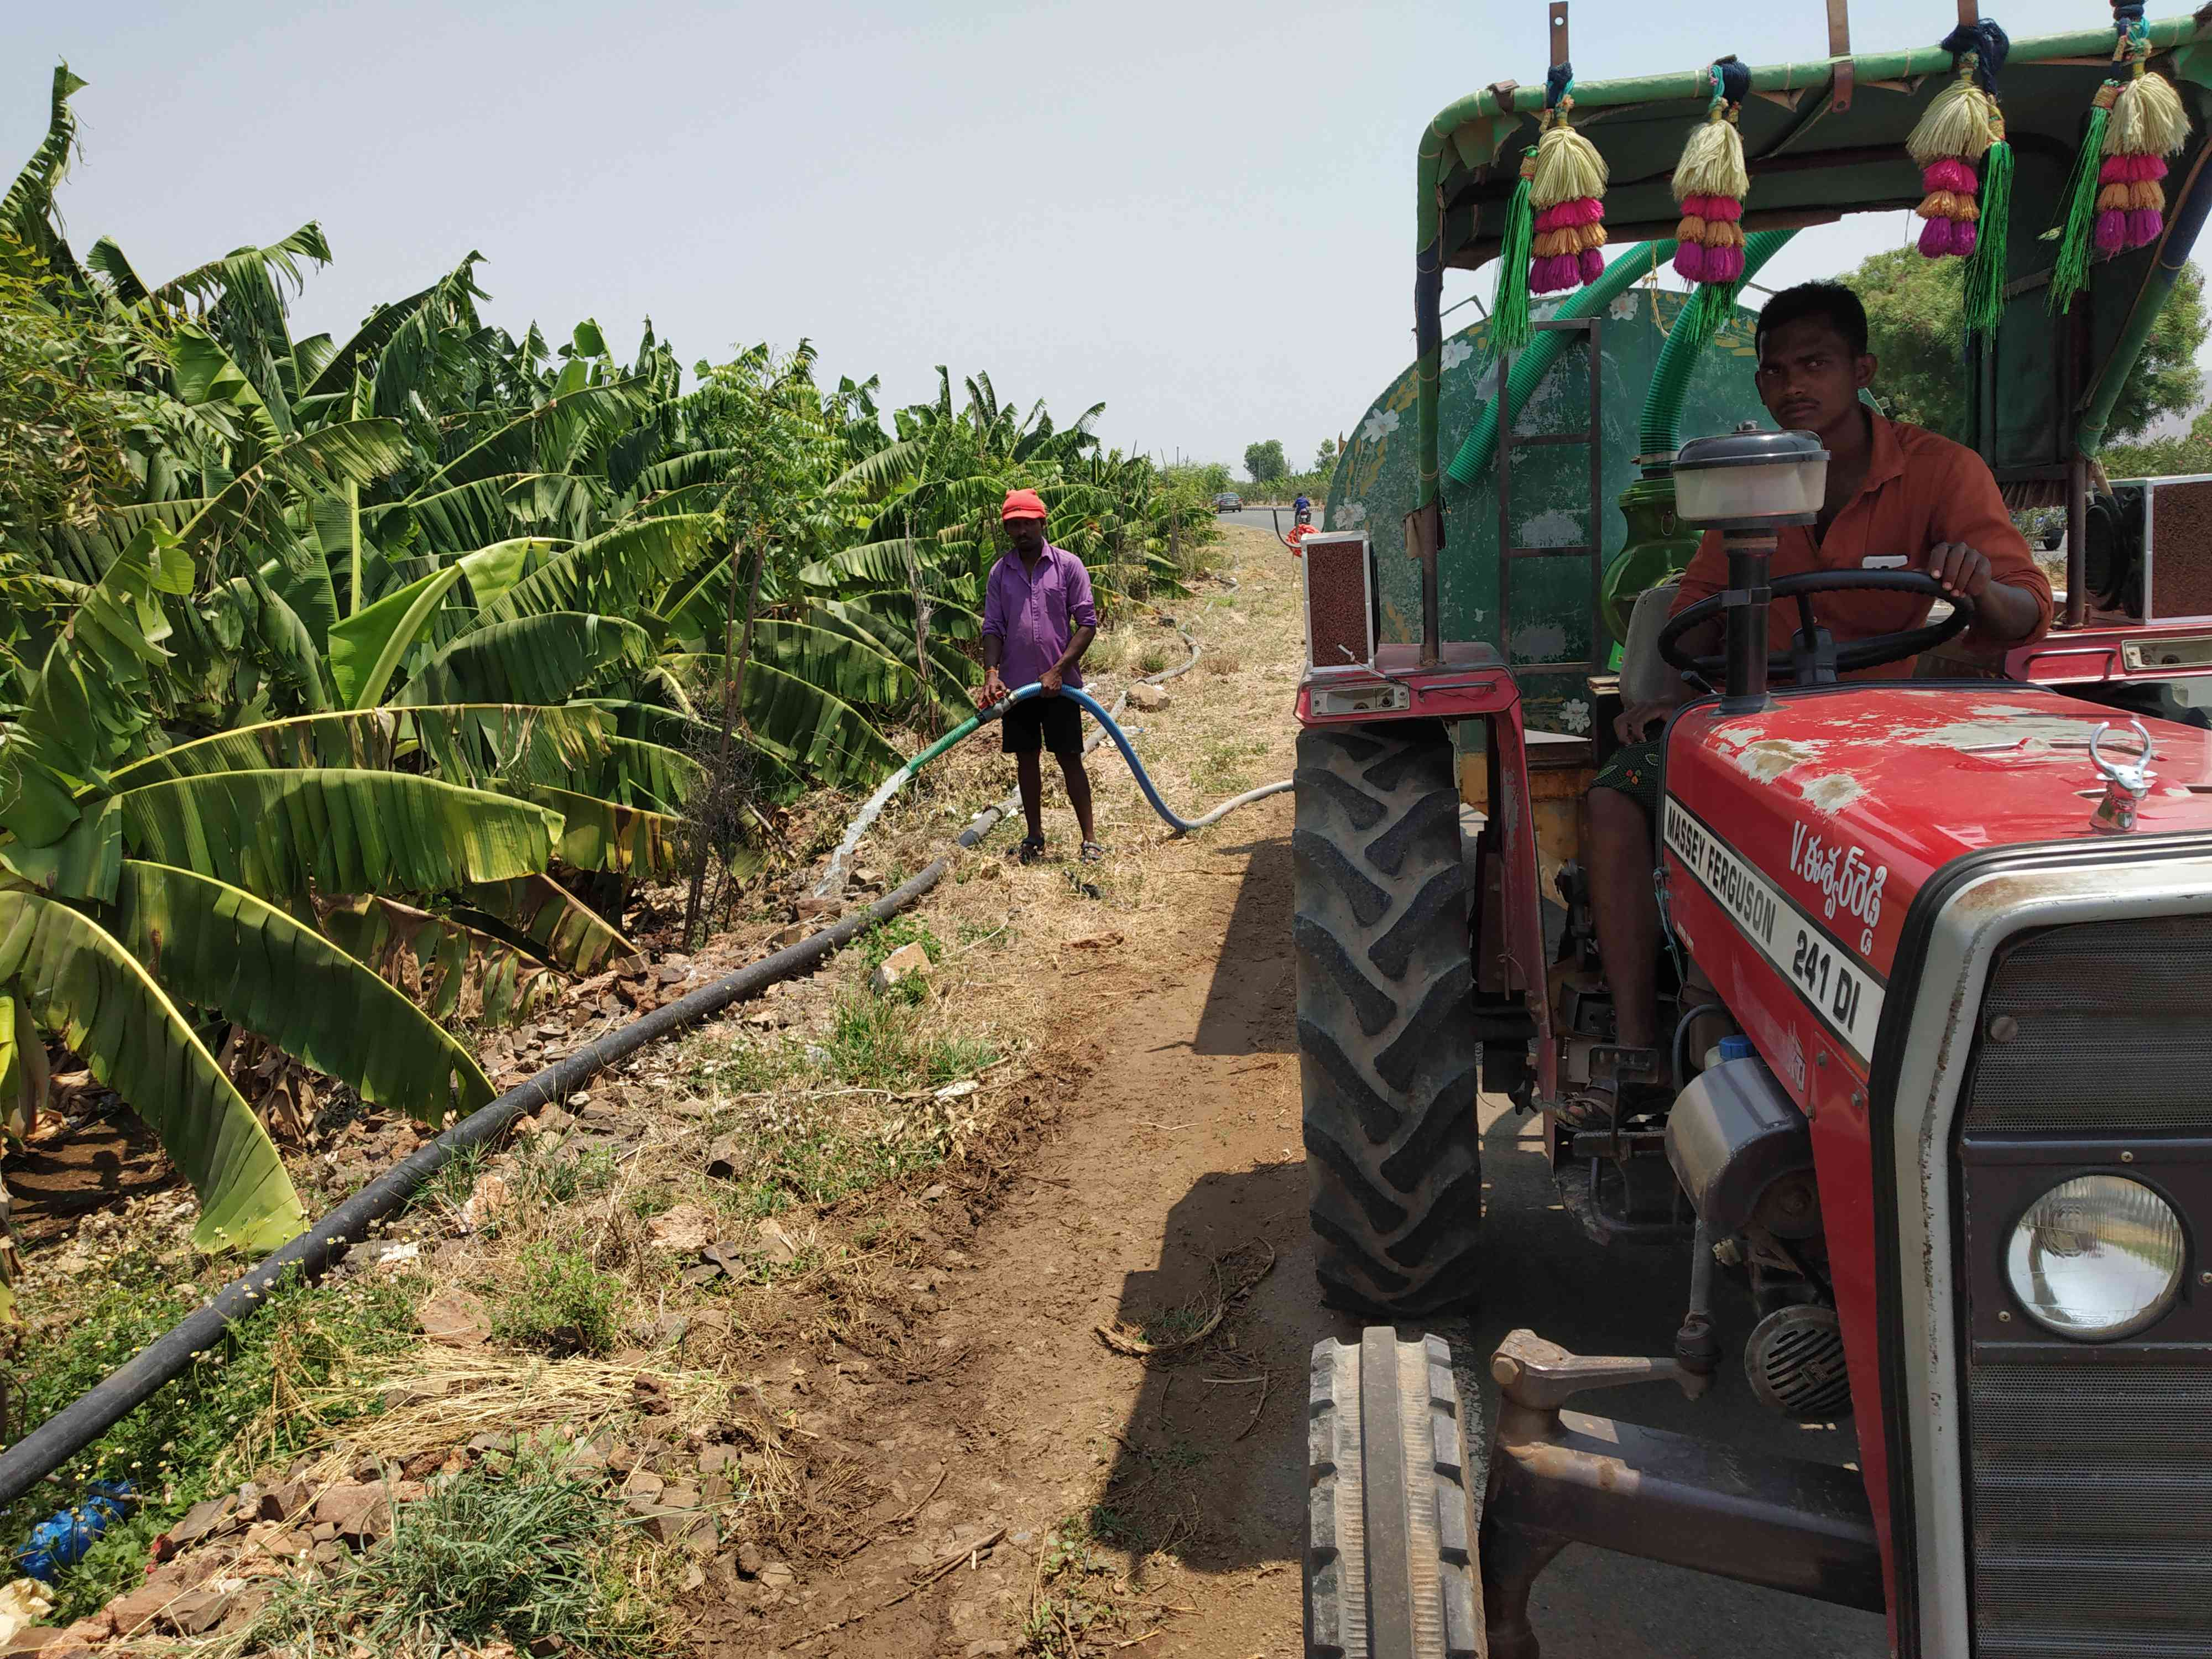 A farmer in Kadapa watering his plantain farm. The water is bought from private suppliers at Rs 500 per 5,000 litres. Photo credit: Sruthisagar Yamunan